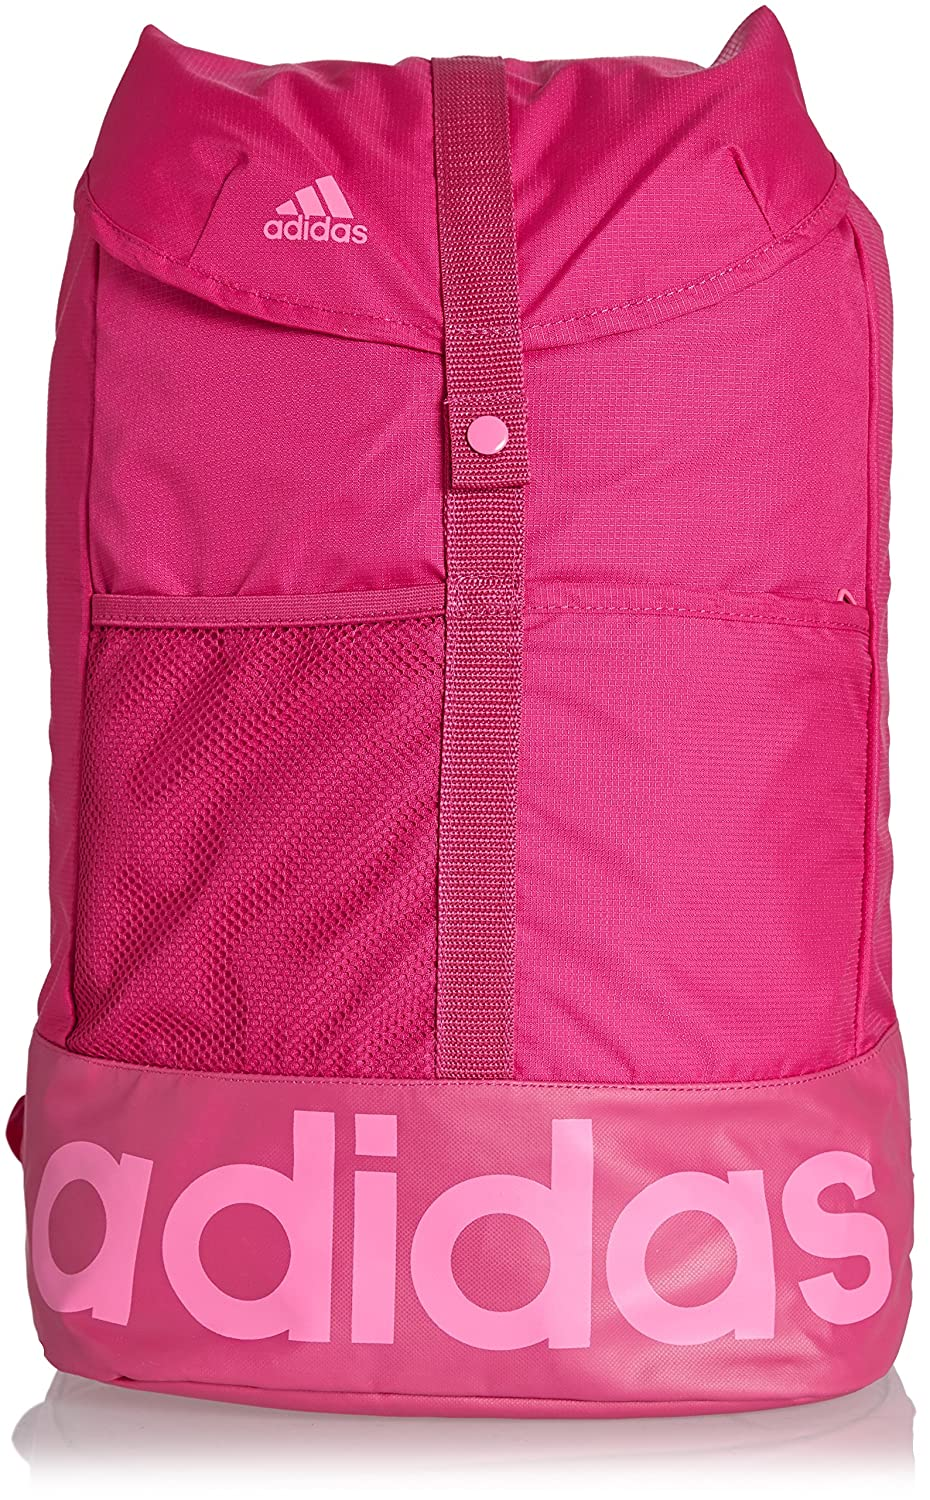 73e88b9581 adidas Womens Linear Bag in Pink - One Size  adidas  Amazon.co.uk  Sports    Outdoors